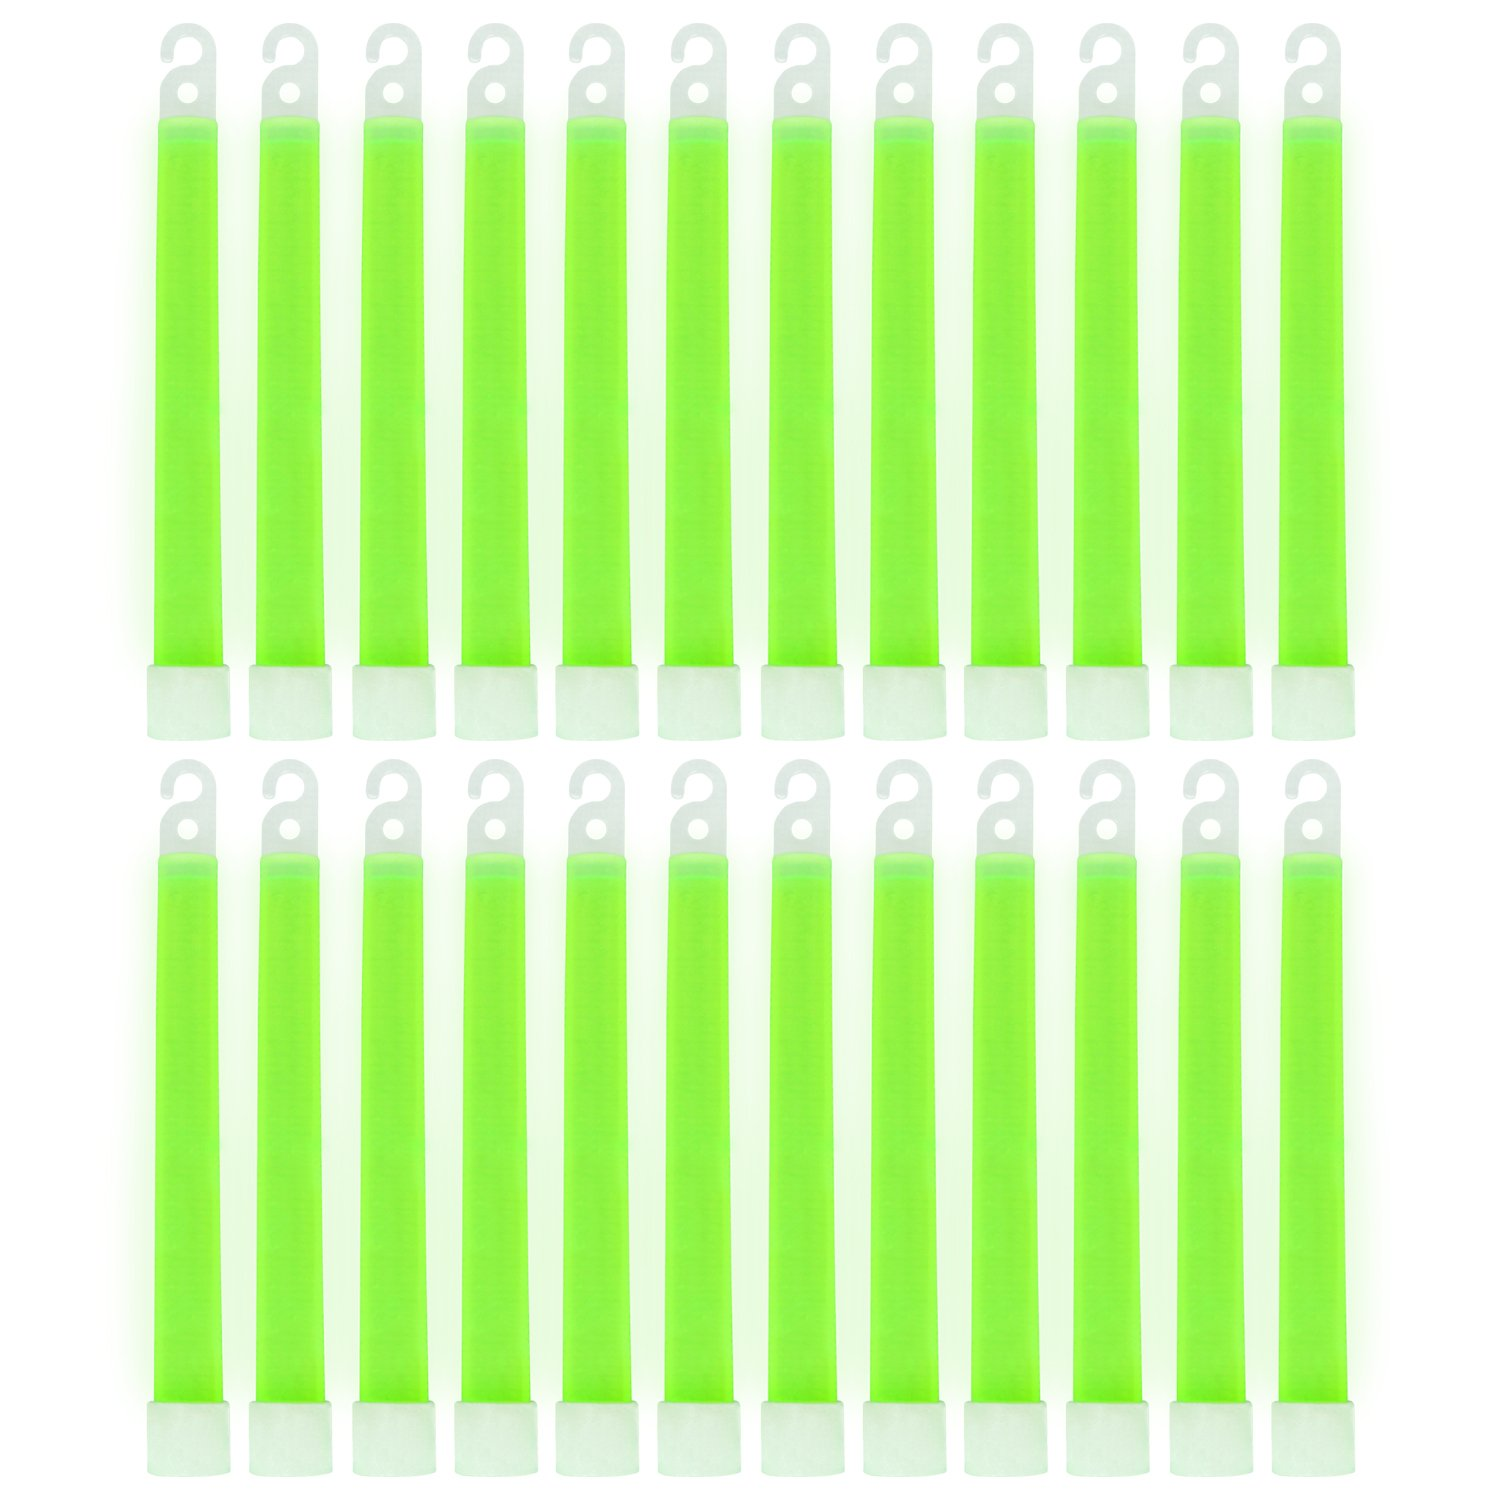 MediTac Green Glow Stick - Bright 6'' Snap Sticks With 12 Hour Duration (24 Pack)